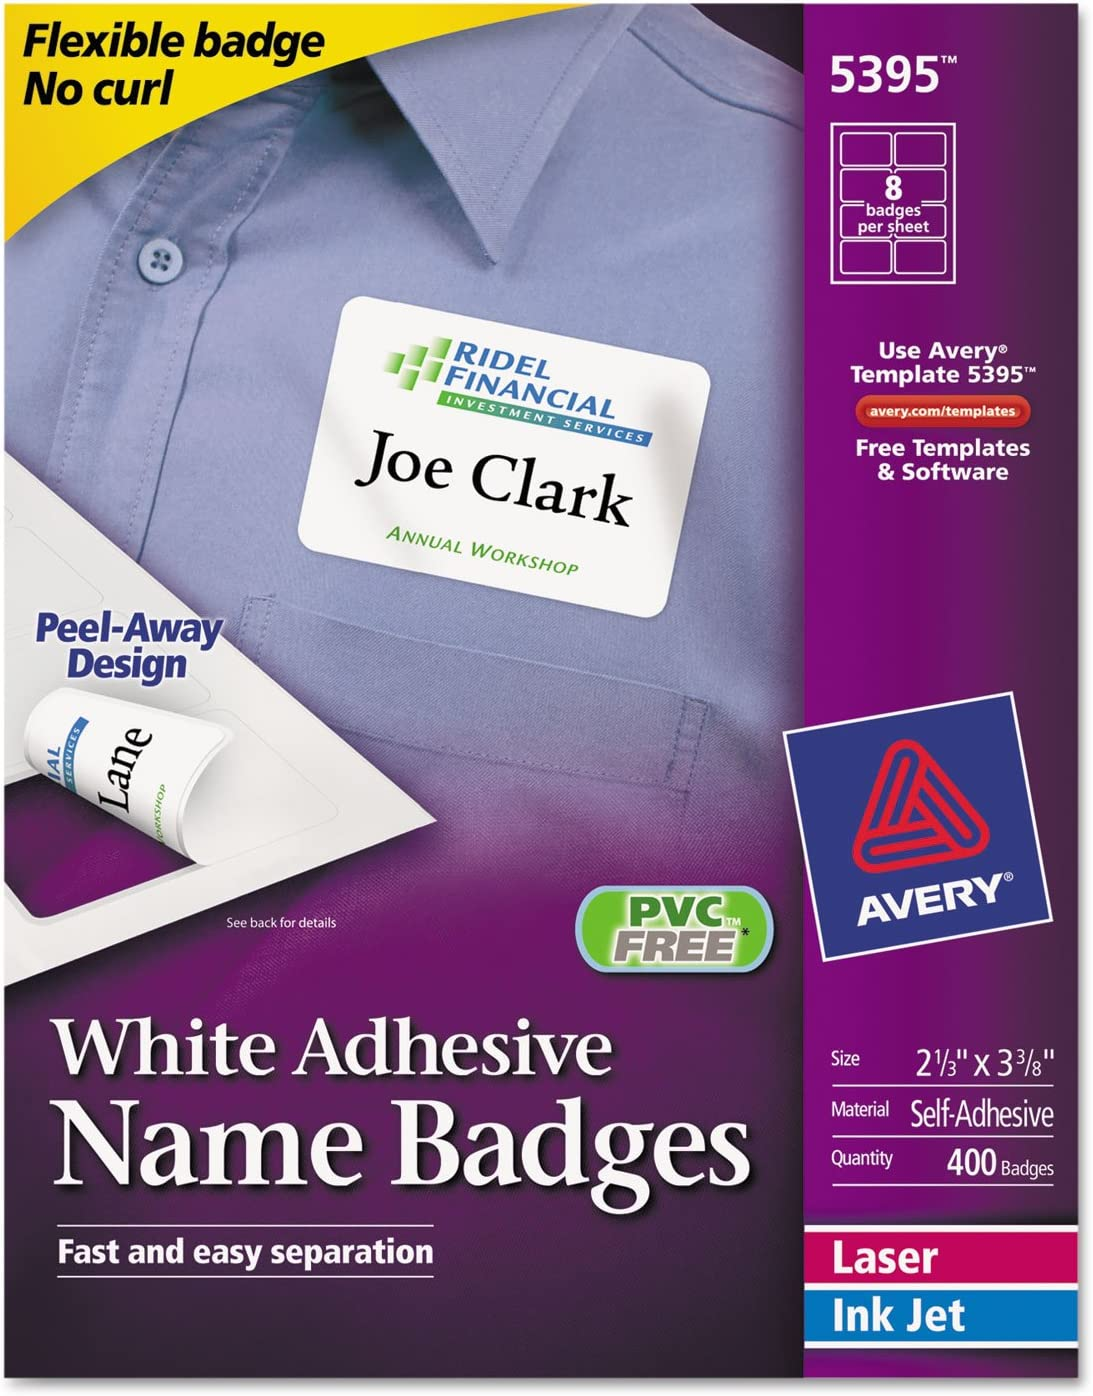 White Adhesive Name Max Max 79% OFF 70% OFF Badges - 5395